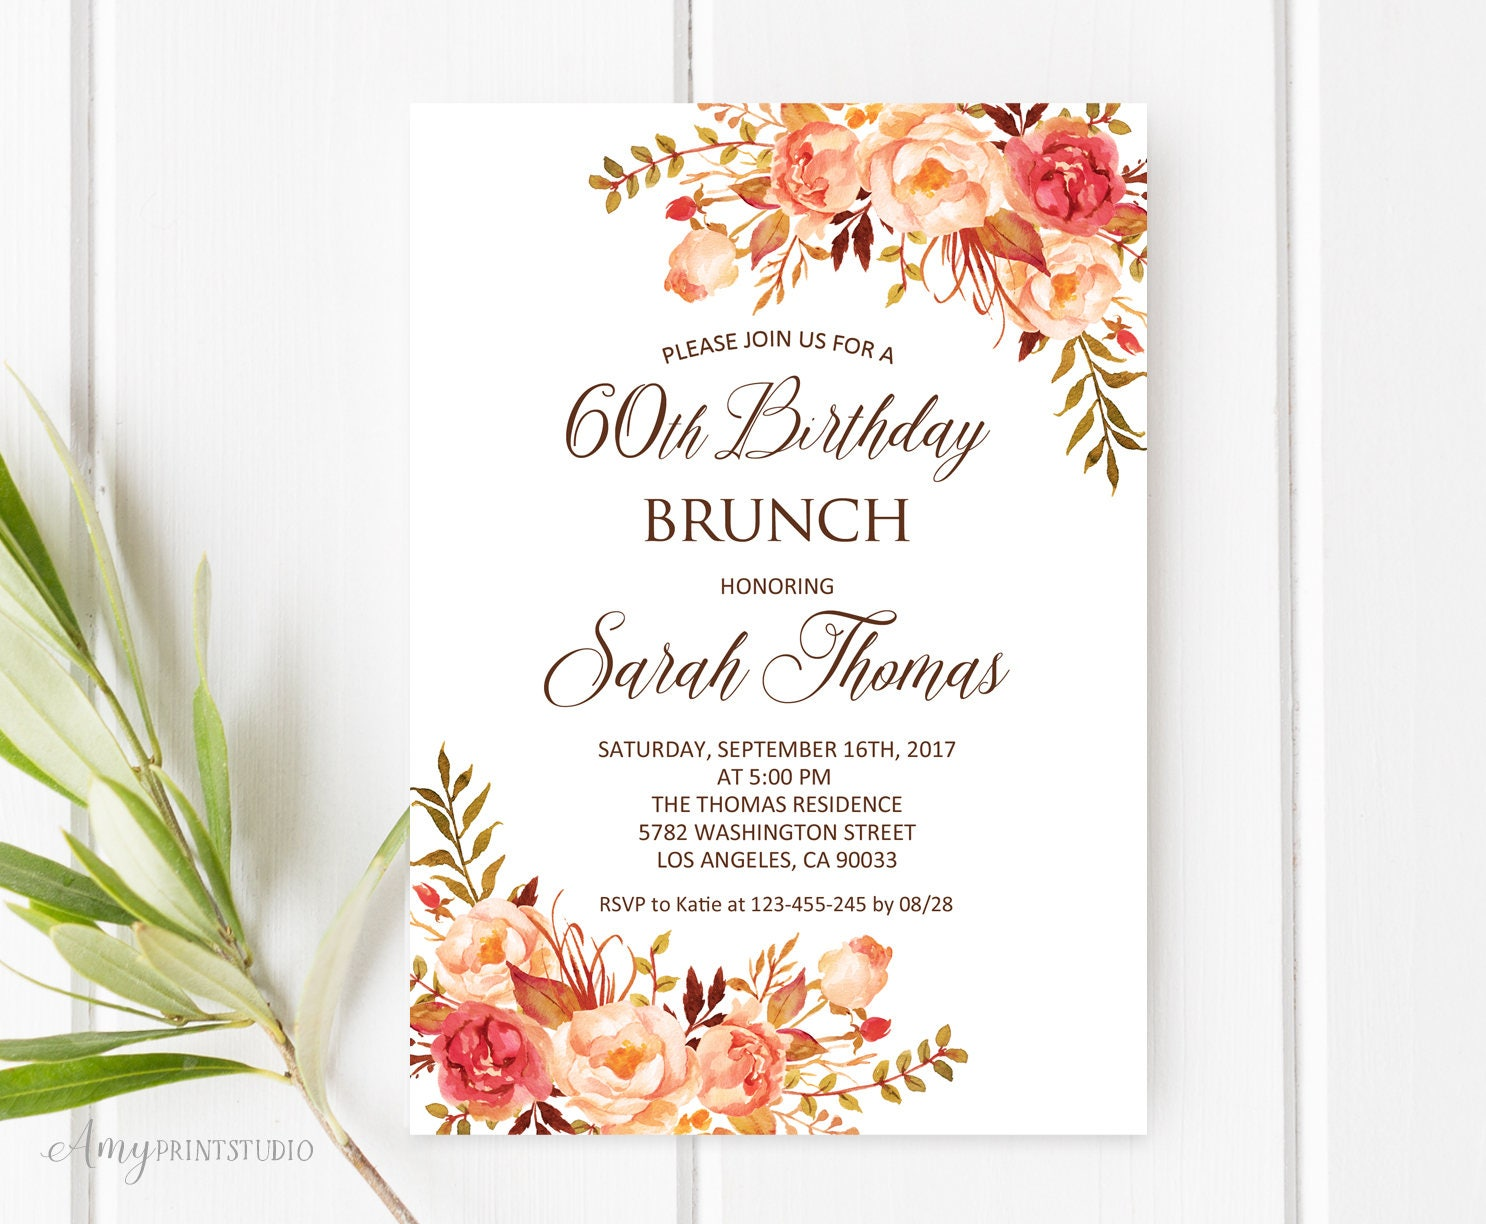 Birthday Brunch Invitation 60th Birthday Invitation Fall | Etsy